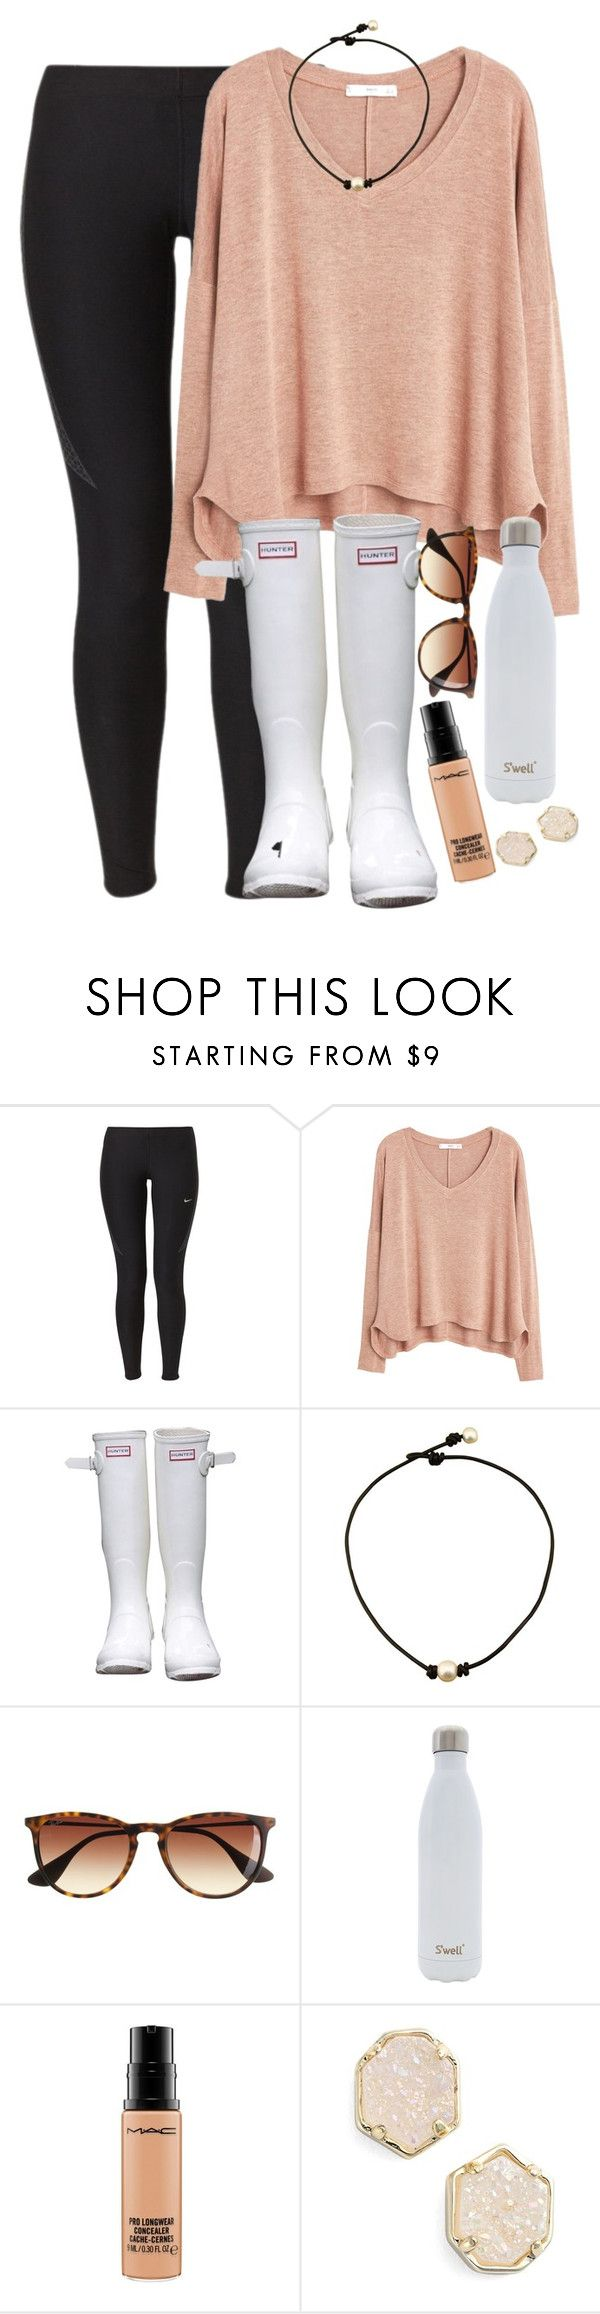 """gah so scared what even jeez louise"" by elizabethannee ❤ liked on Polyvore featuring NIKE, MANGO, Hunter, J.Crew, S'well, MAC Cosmetics, Kendra Scott, women's clothing, women's fashion and women"